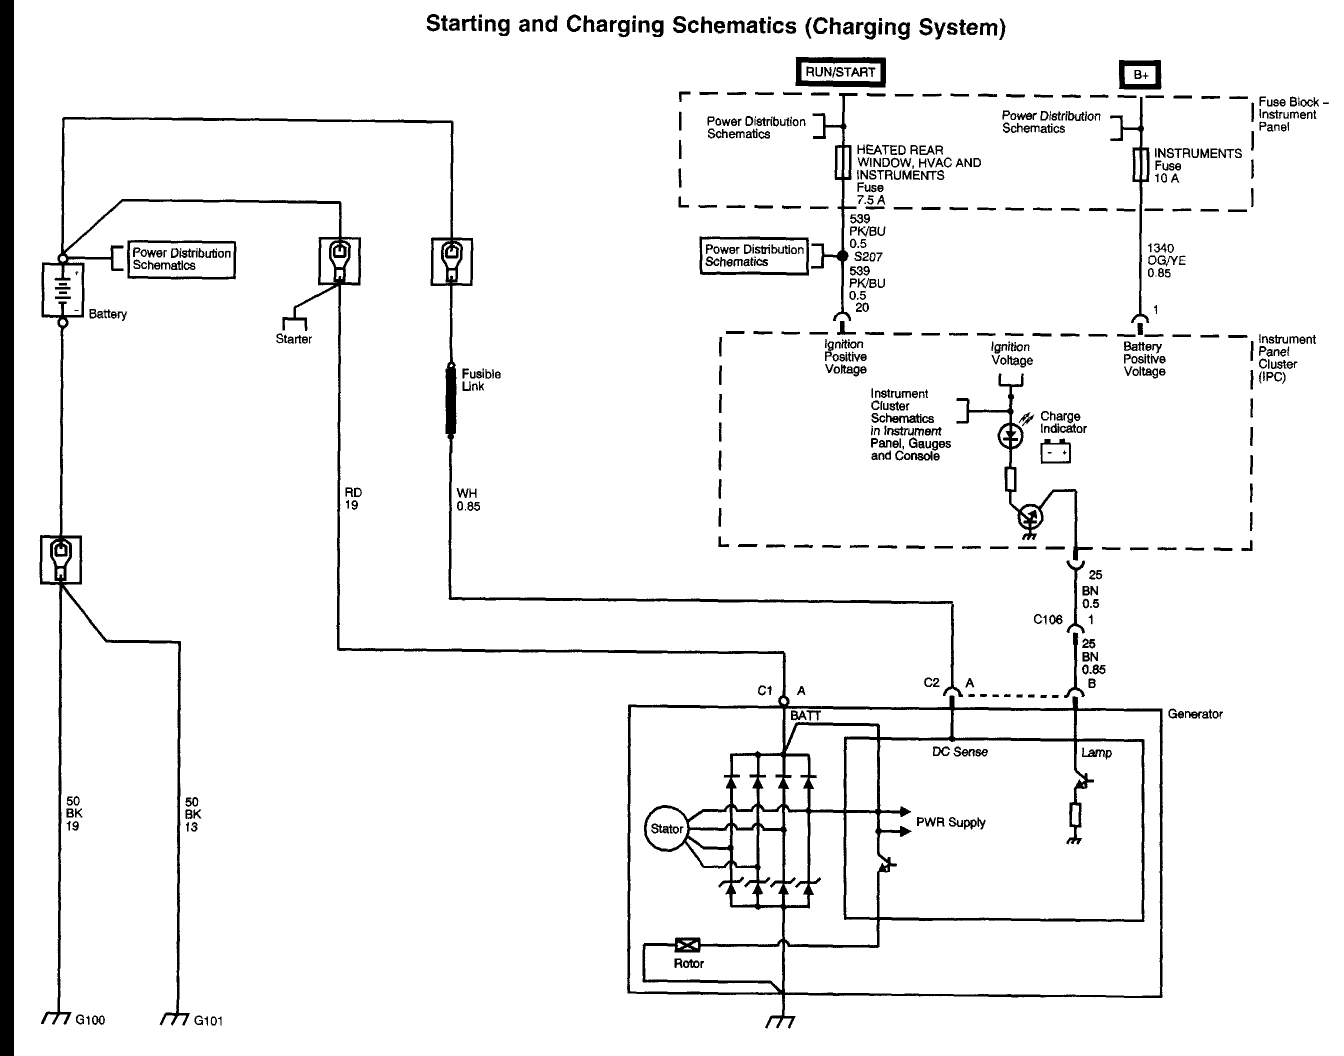 Tumble Chiller Wiring Diagram Cleveland -Lawn Sprinkler System Wiring  Diagram Free Picture | Begeboy Wiring Diagram Source | Tumble Chiller Wiring Diagram Cleveland |  | Begeboy Wiring Diagram Source